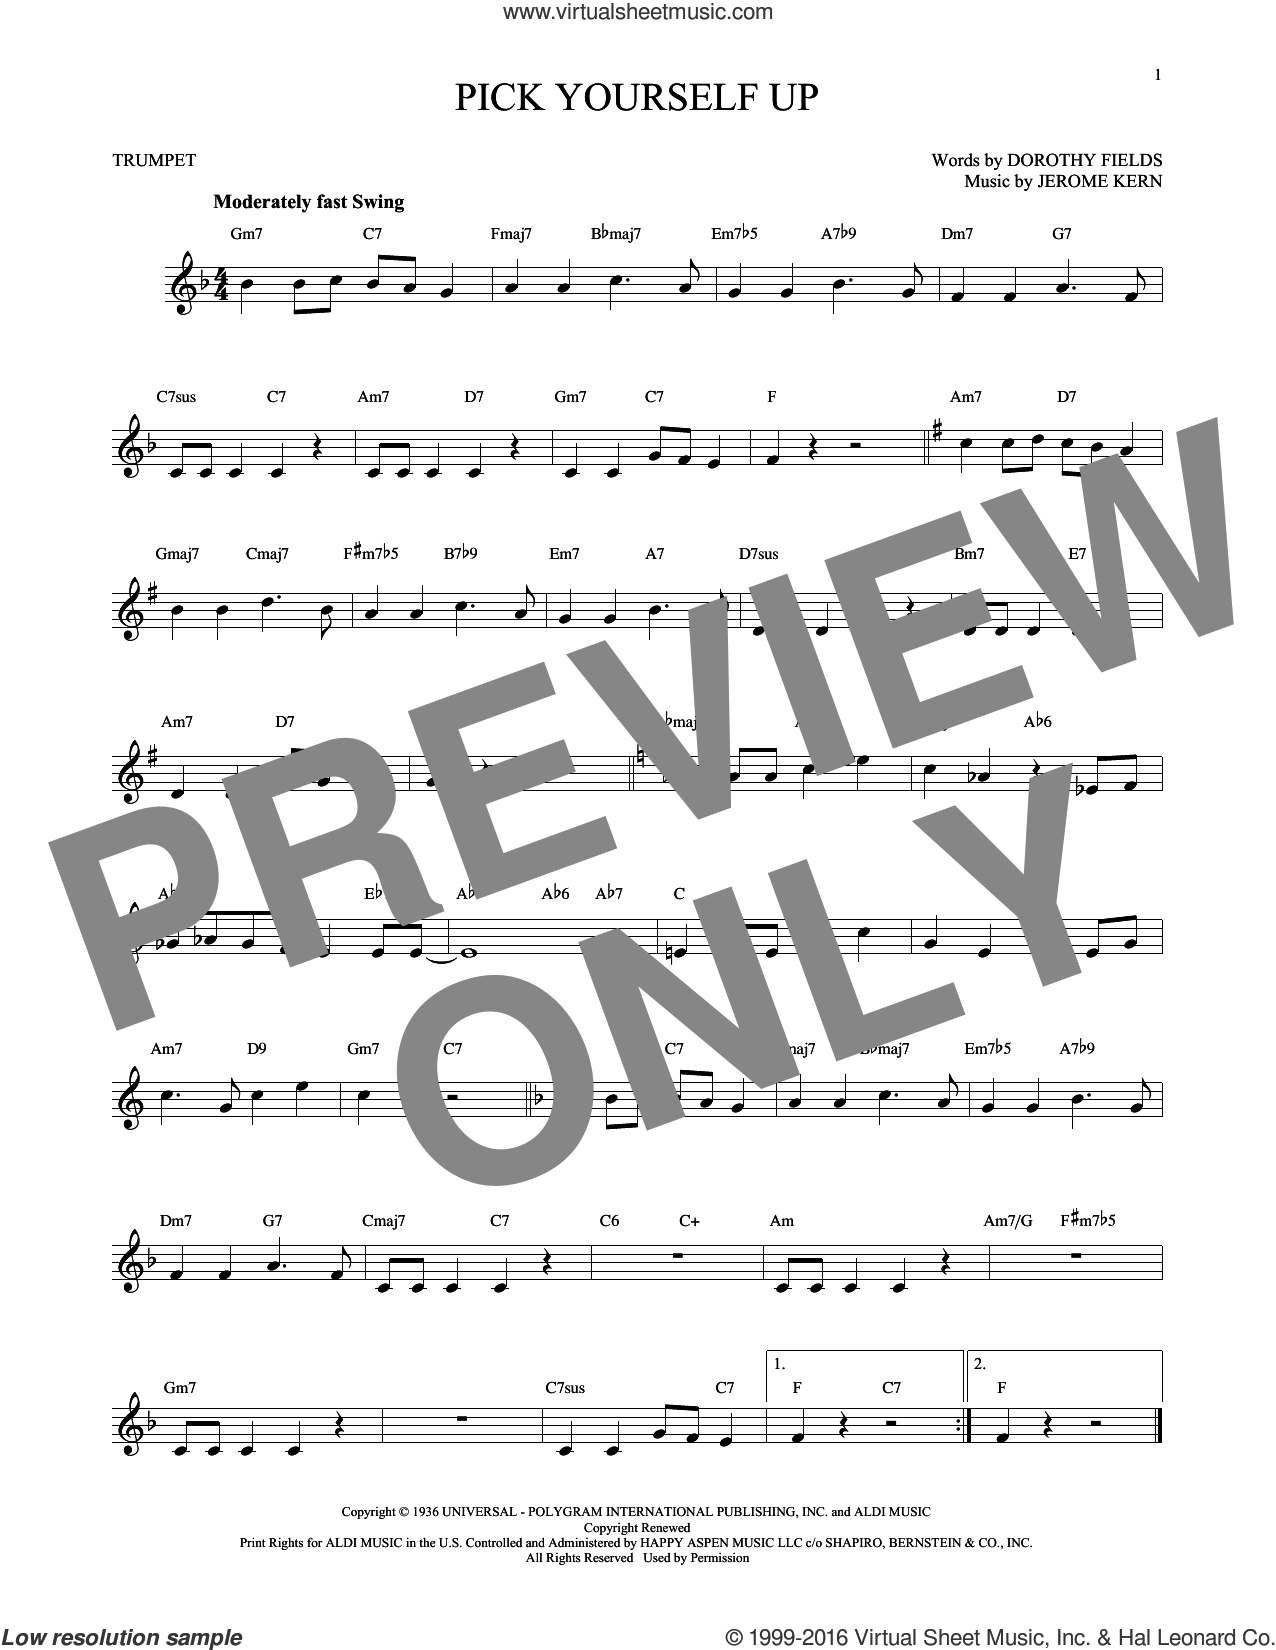 Pick Yourself Up sheet music for trumpet solo by Dorothy Fields and Jerome Kern. Score Image Preview.